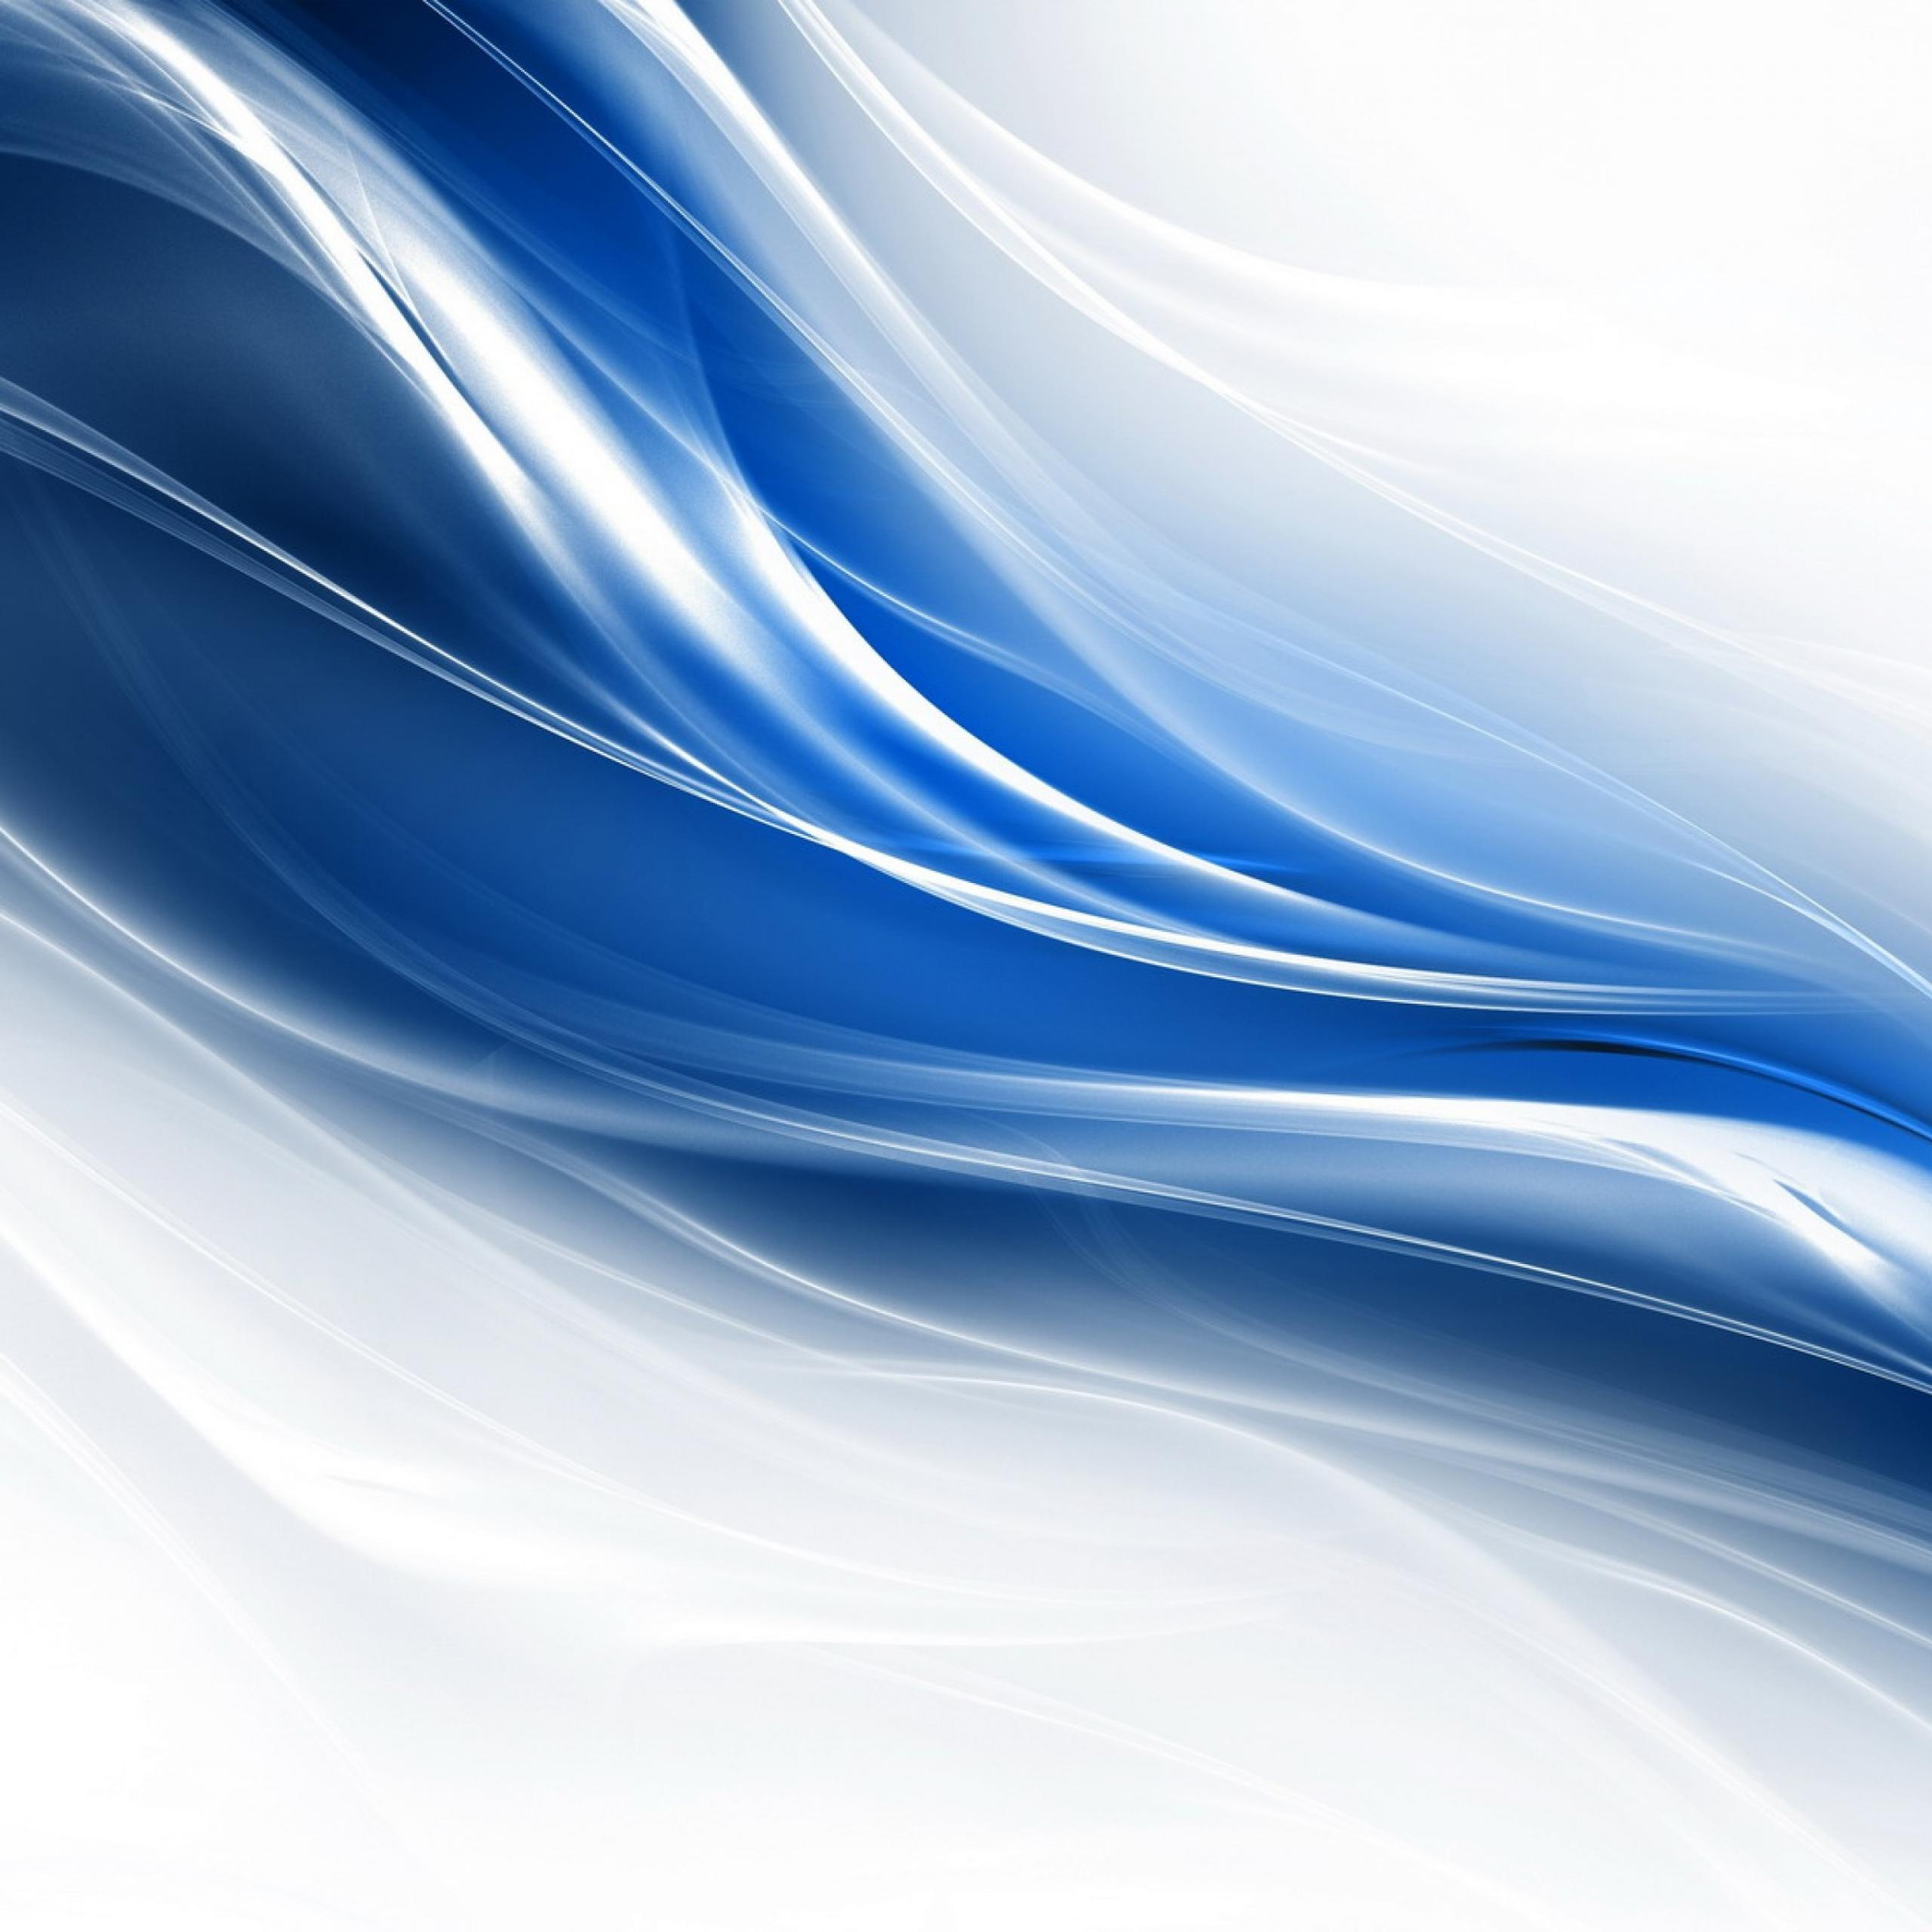 simple blue abstract wallpaper - cool hd wallpapers backgrounds